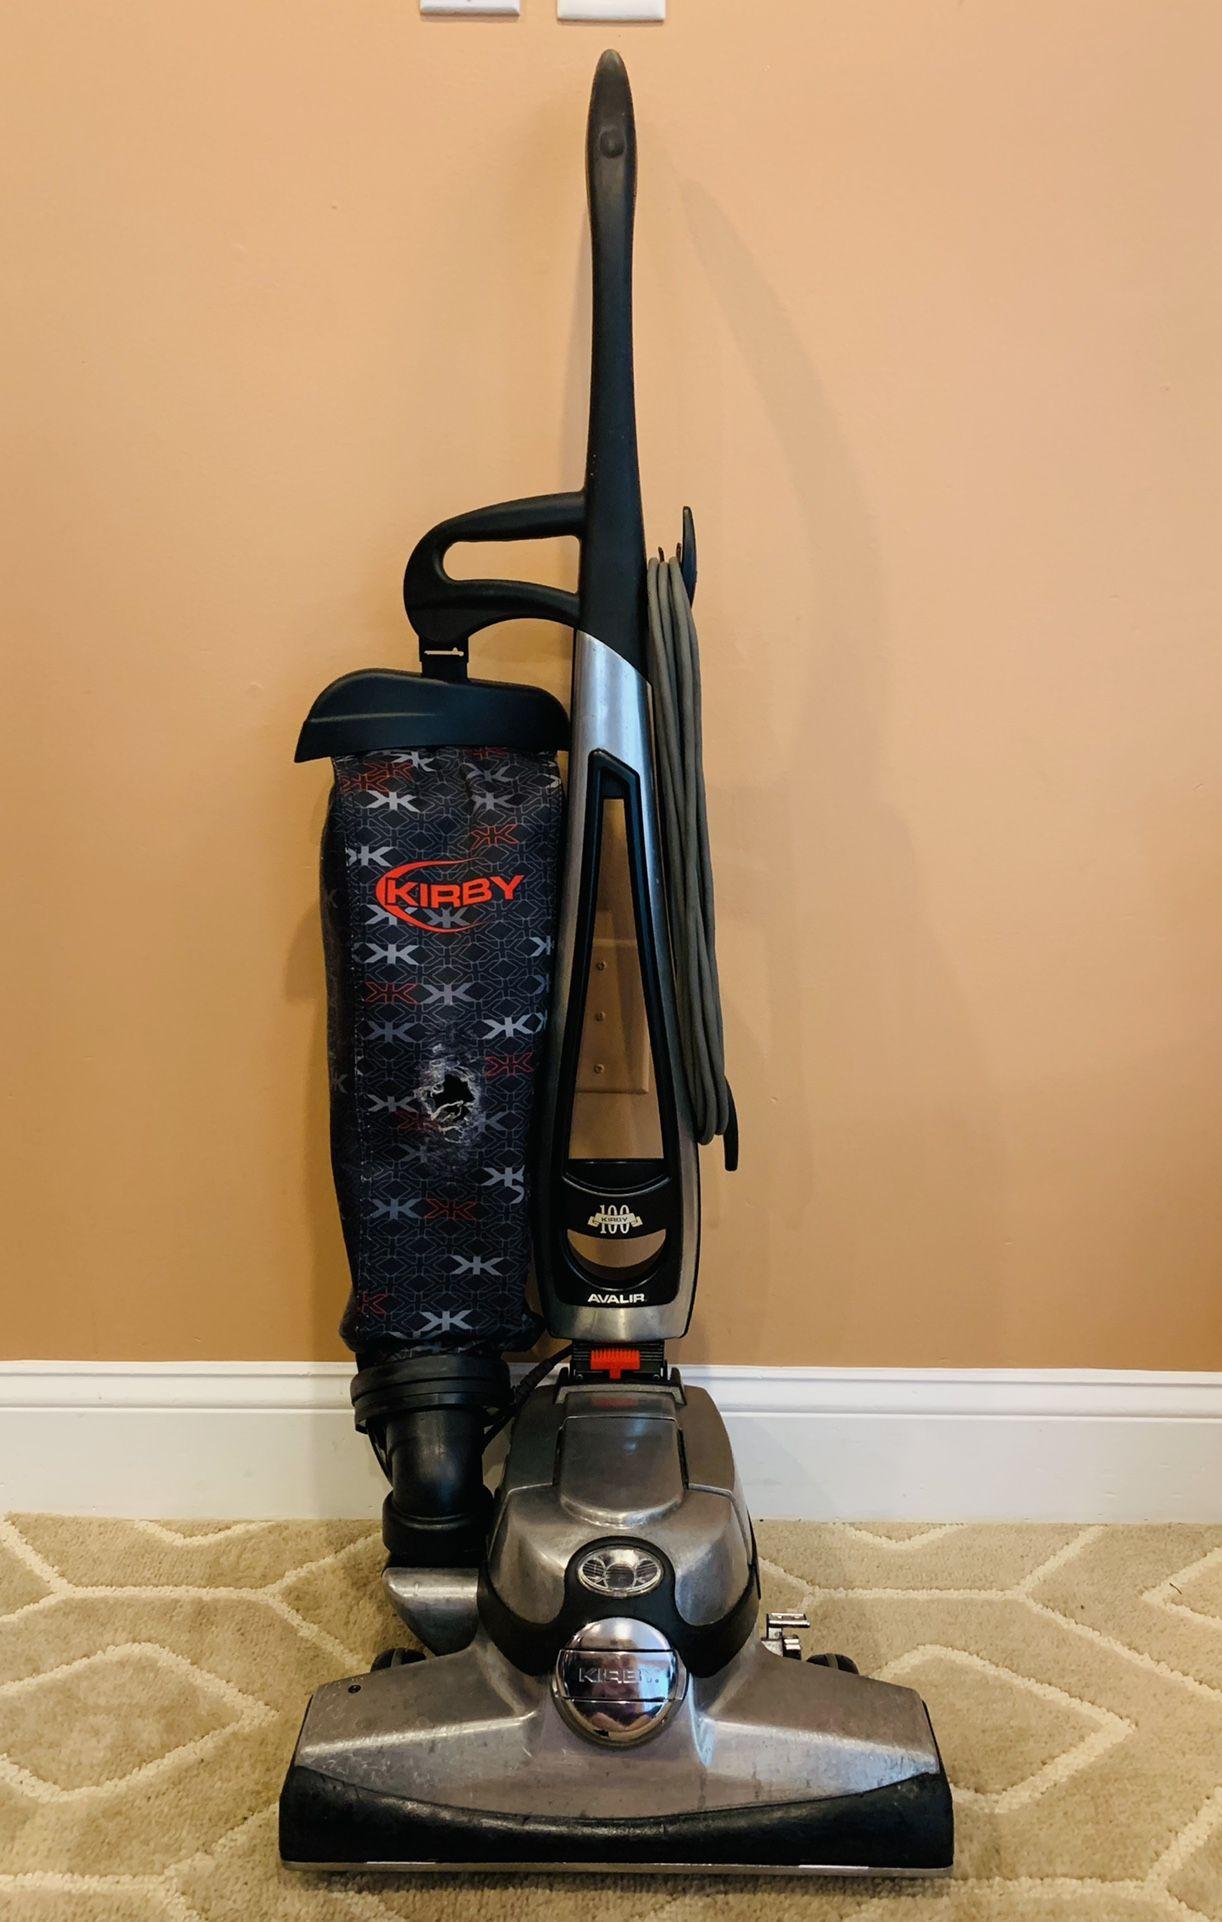 Kirby Avalir vacuum cleaner with attachments and shampooer